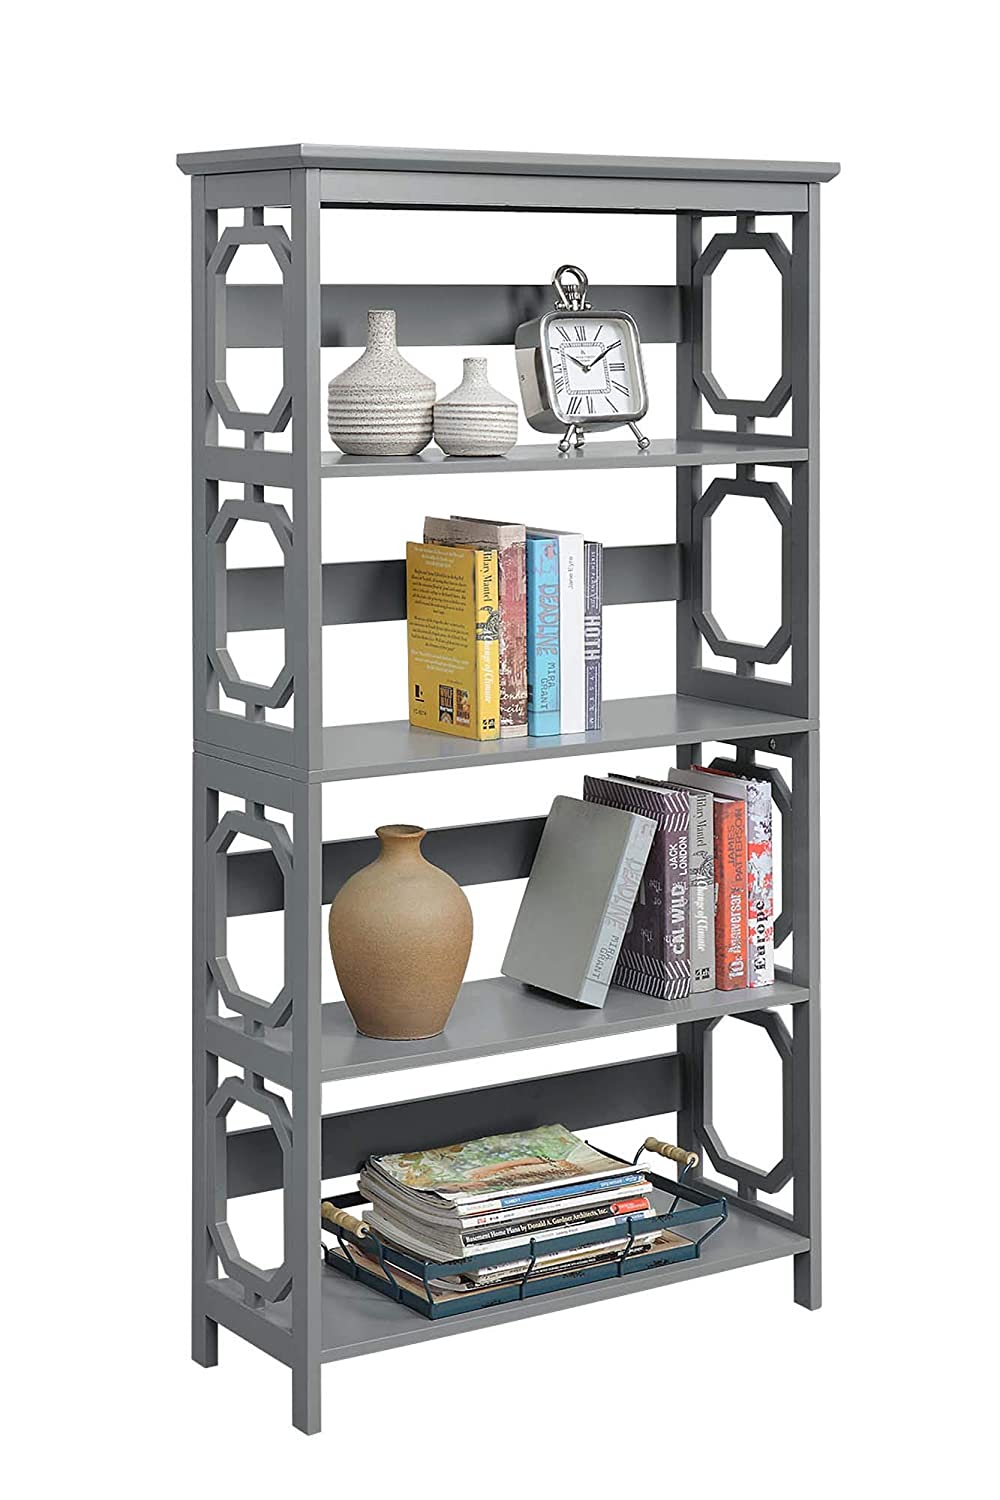 Convenience Concepts 203250GY Omega 5-Tier Bookcase, Gray